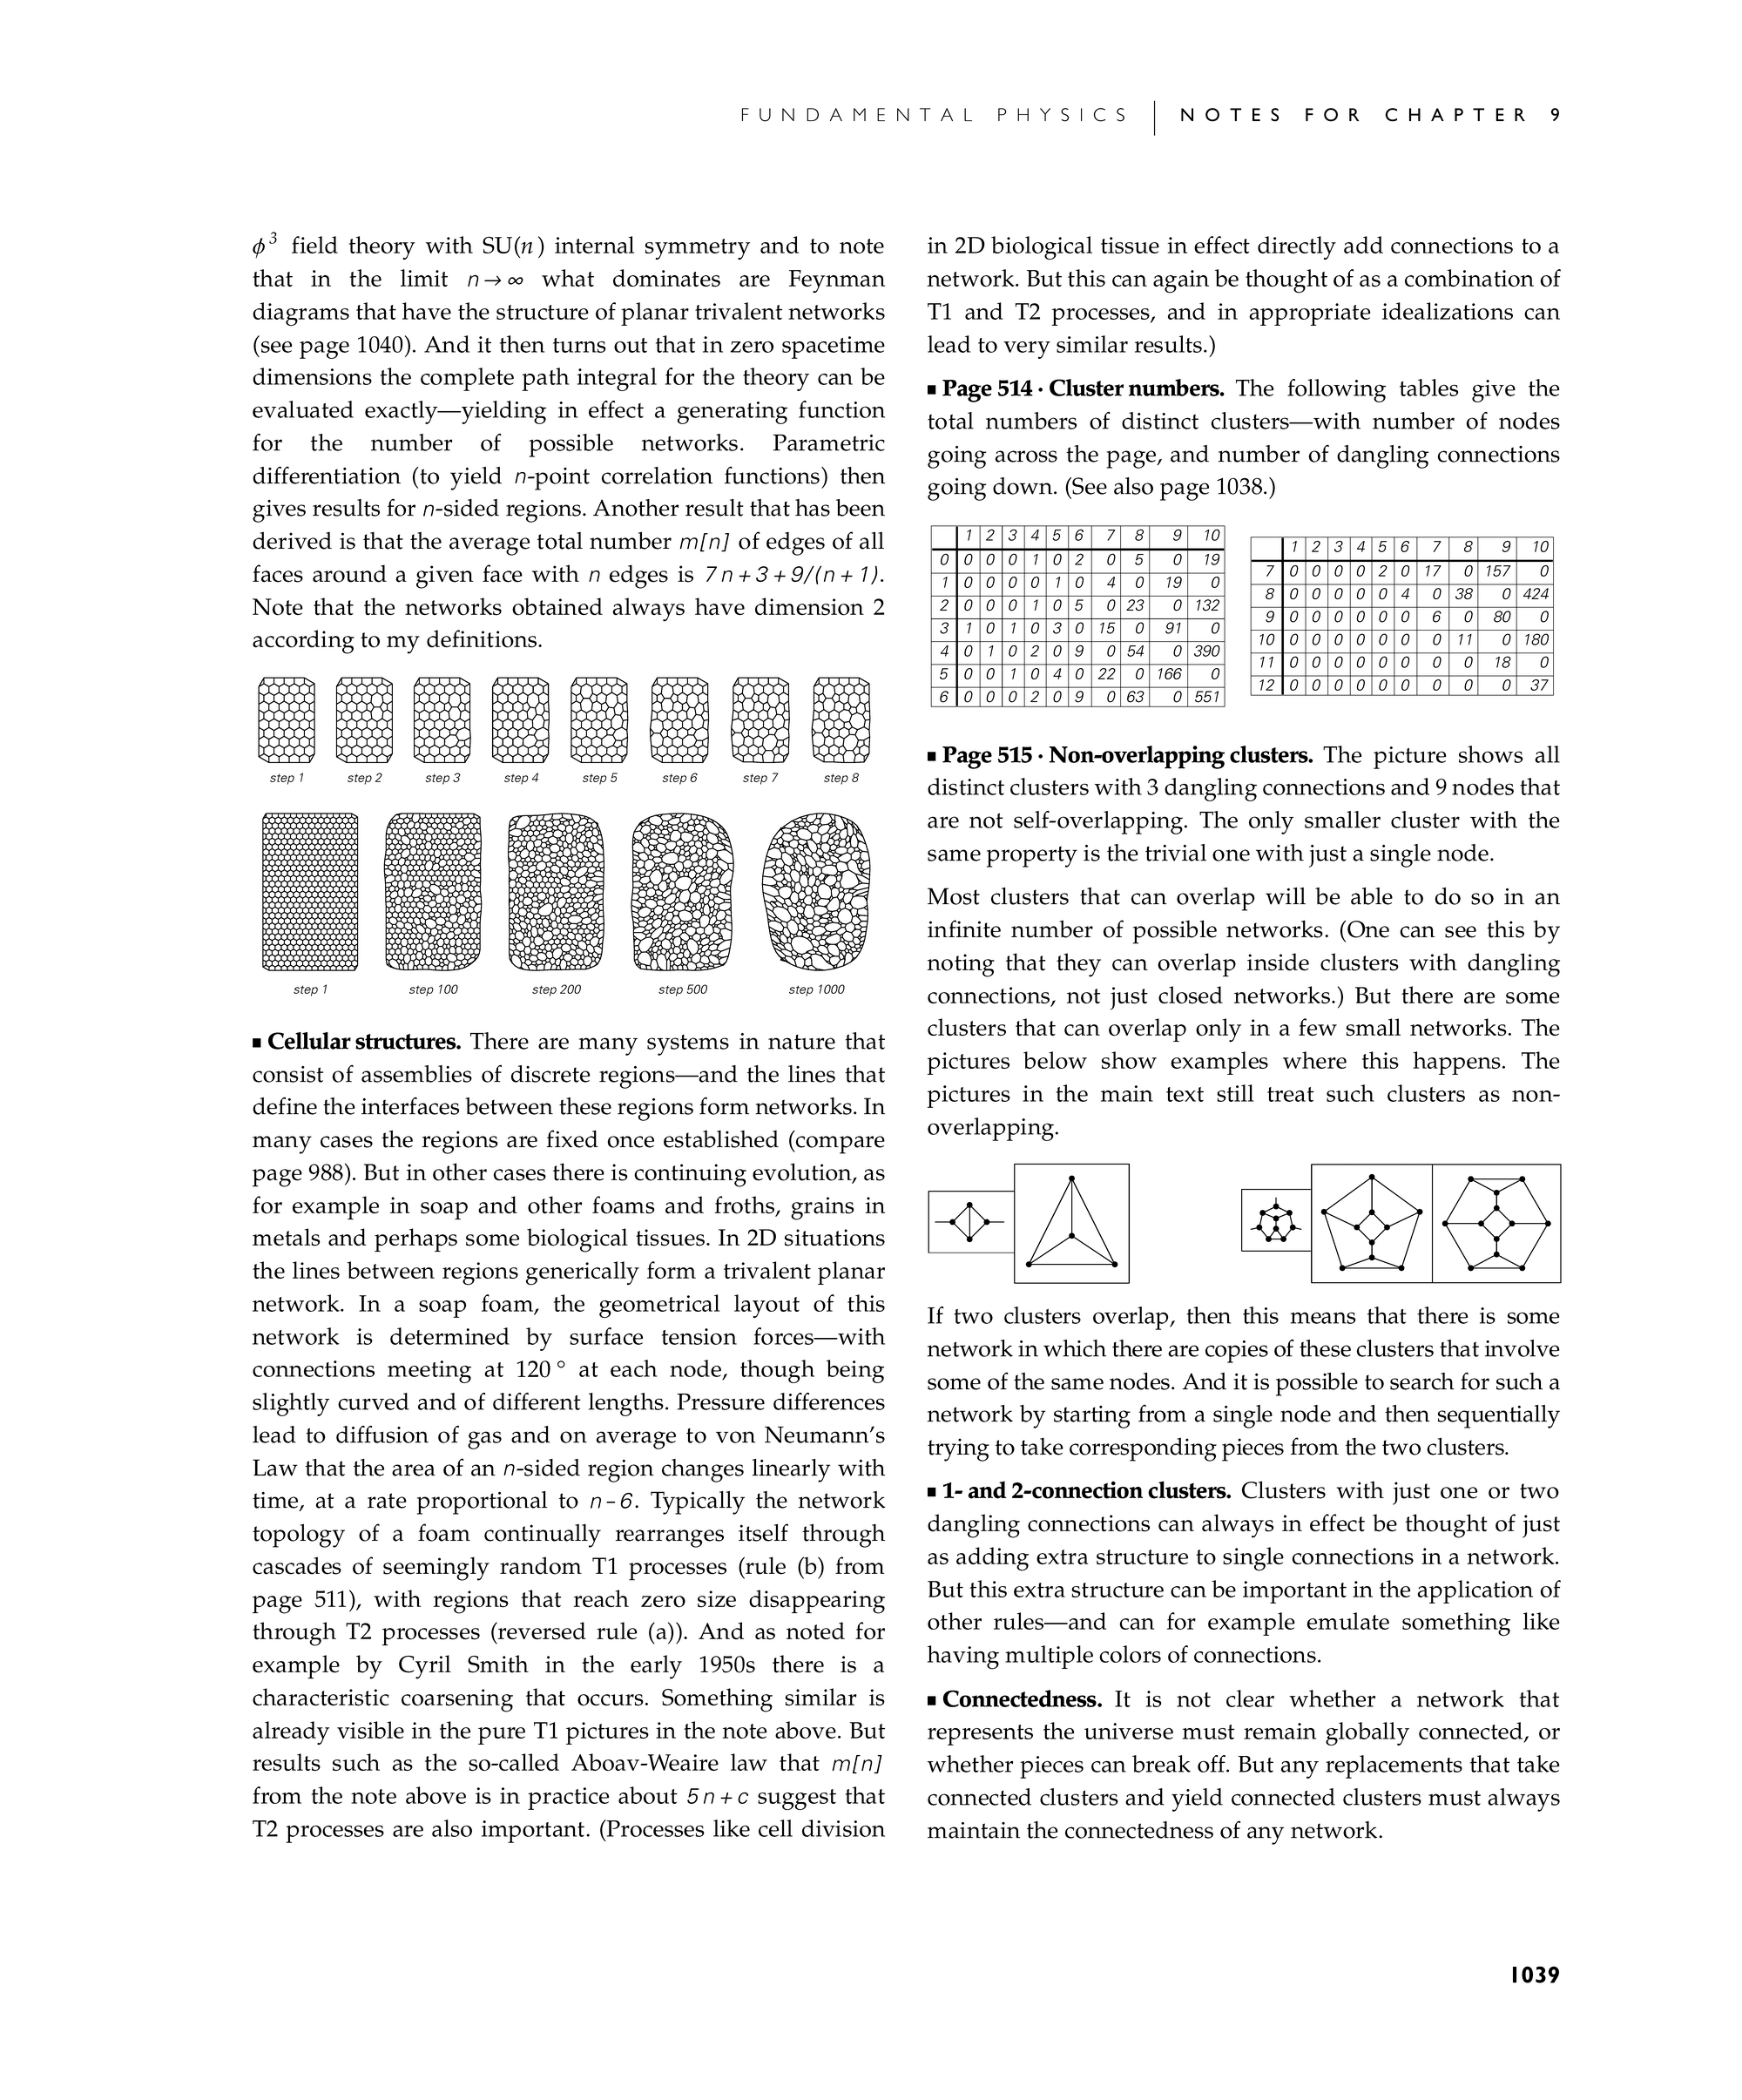 Notes for Evolution of Networks: A New Kind of Science